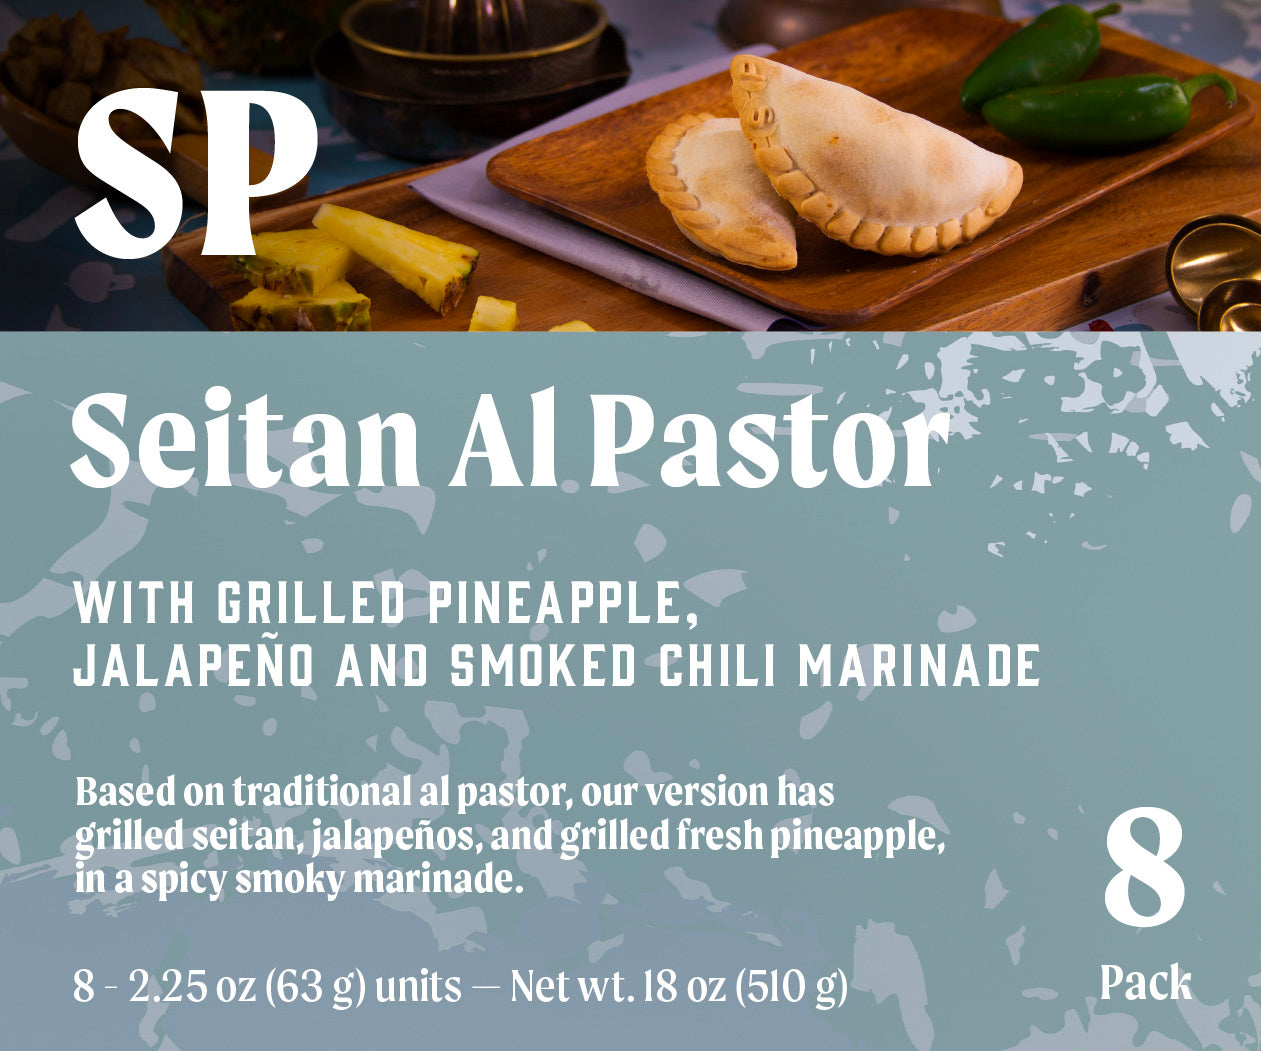 Seitan al Pastor with grilled pineapple, jalapeno and smoked chili marinade